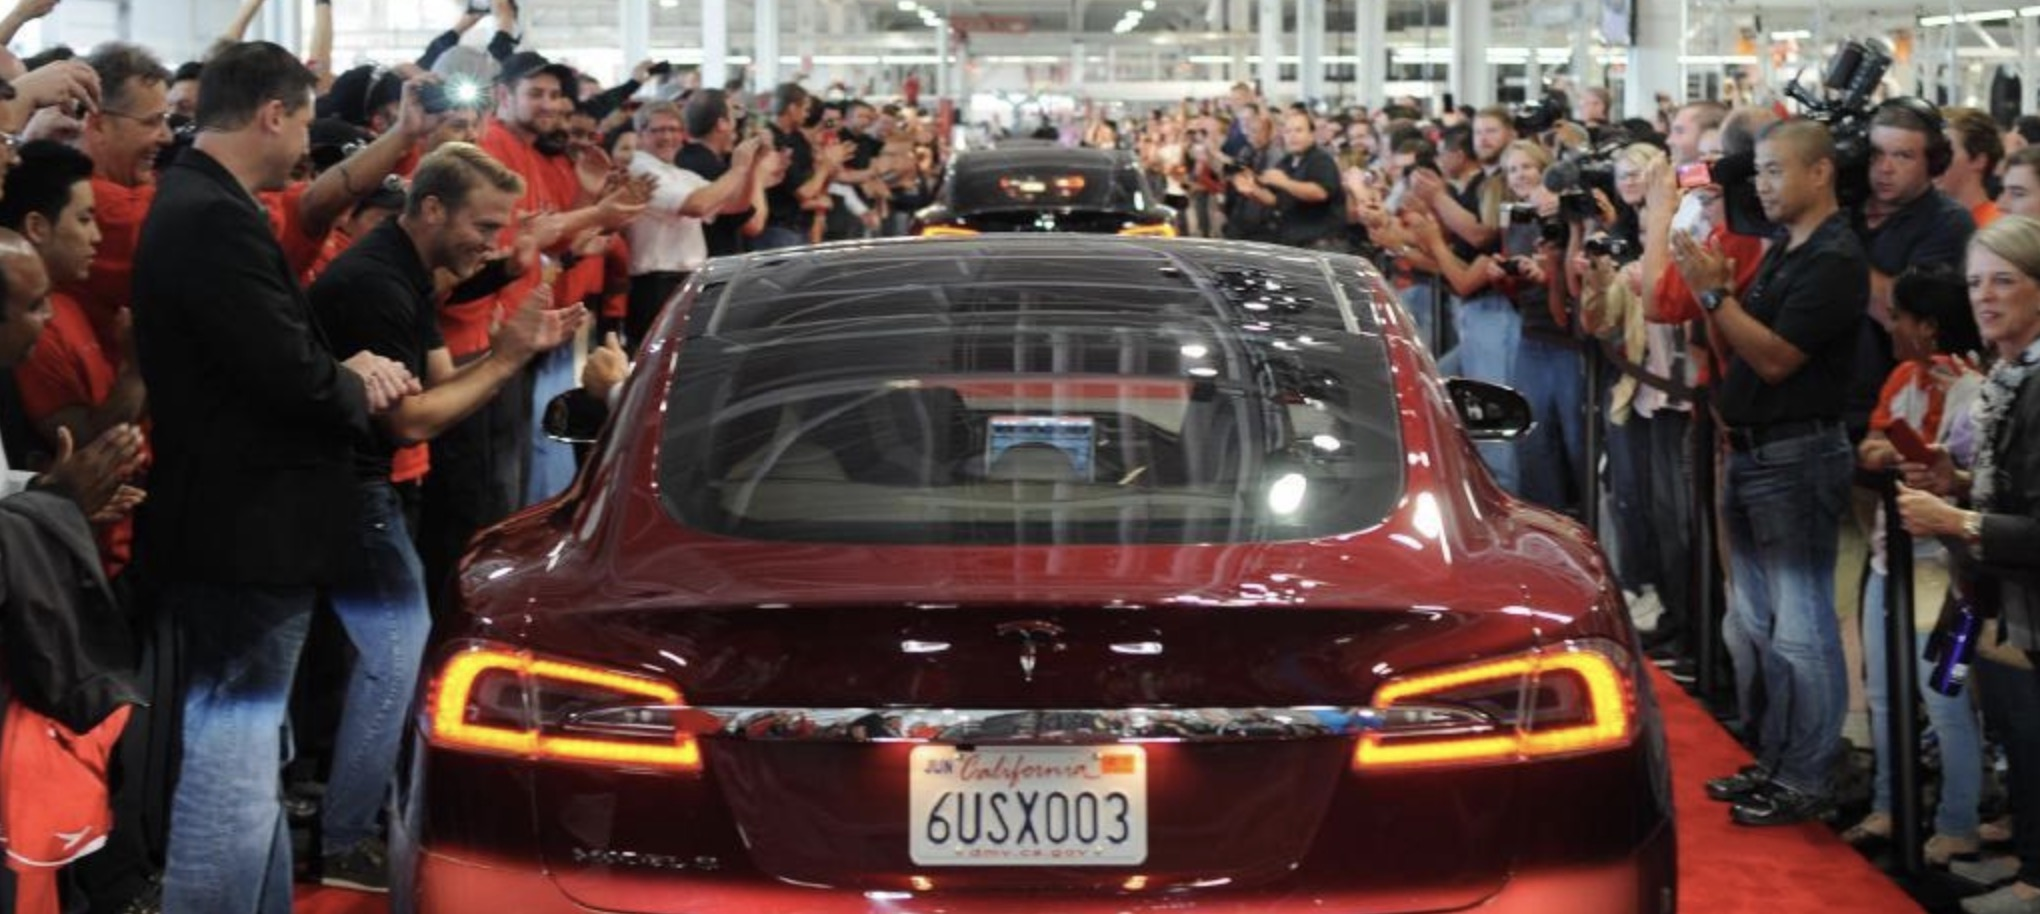 Tesla Model S turns 8 years old - changing the entire industry over that time - Electrek